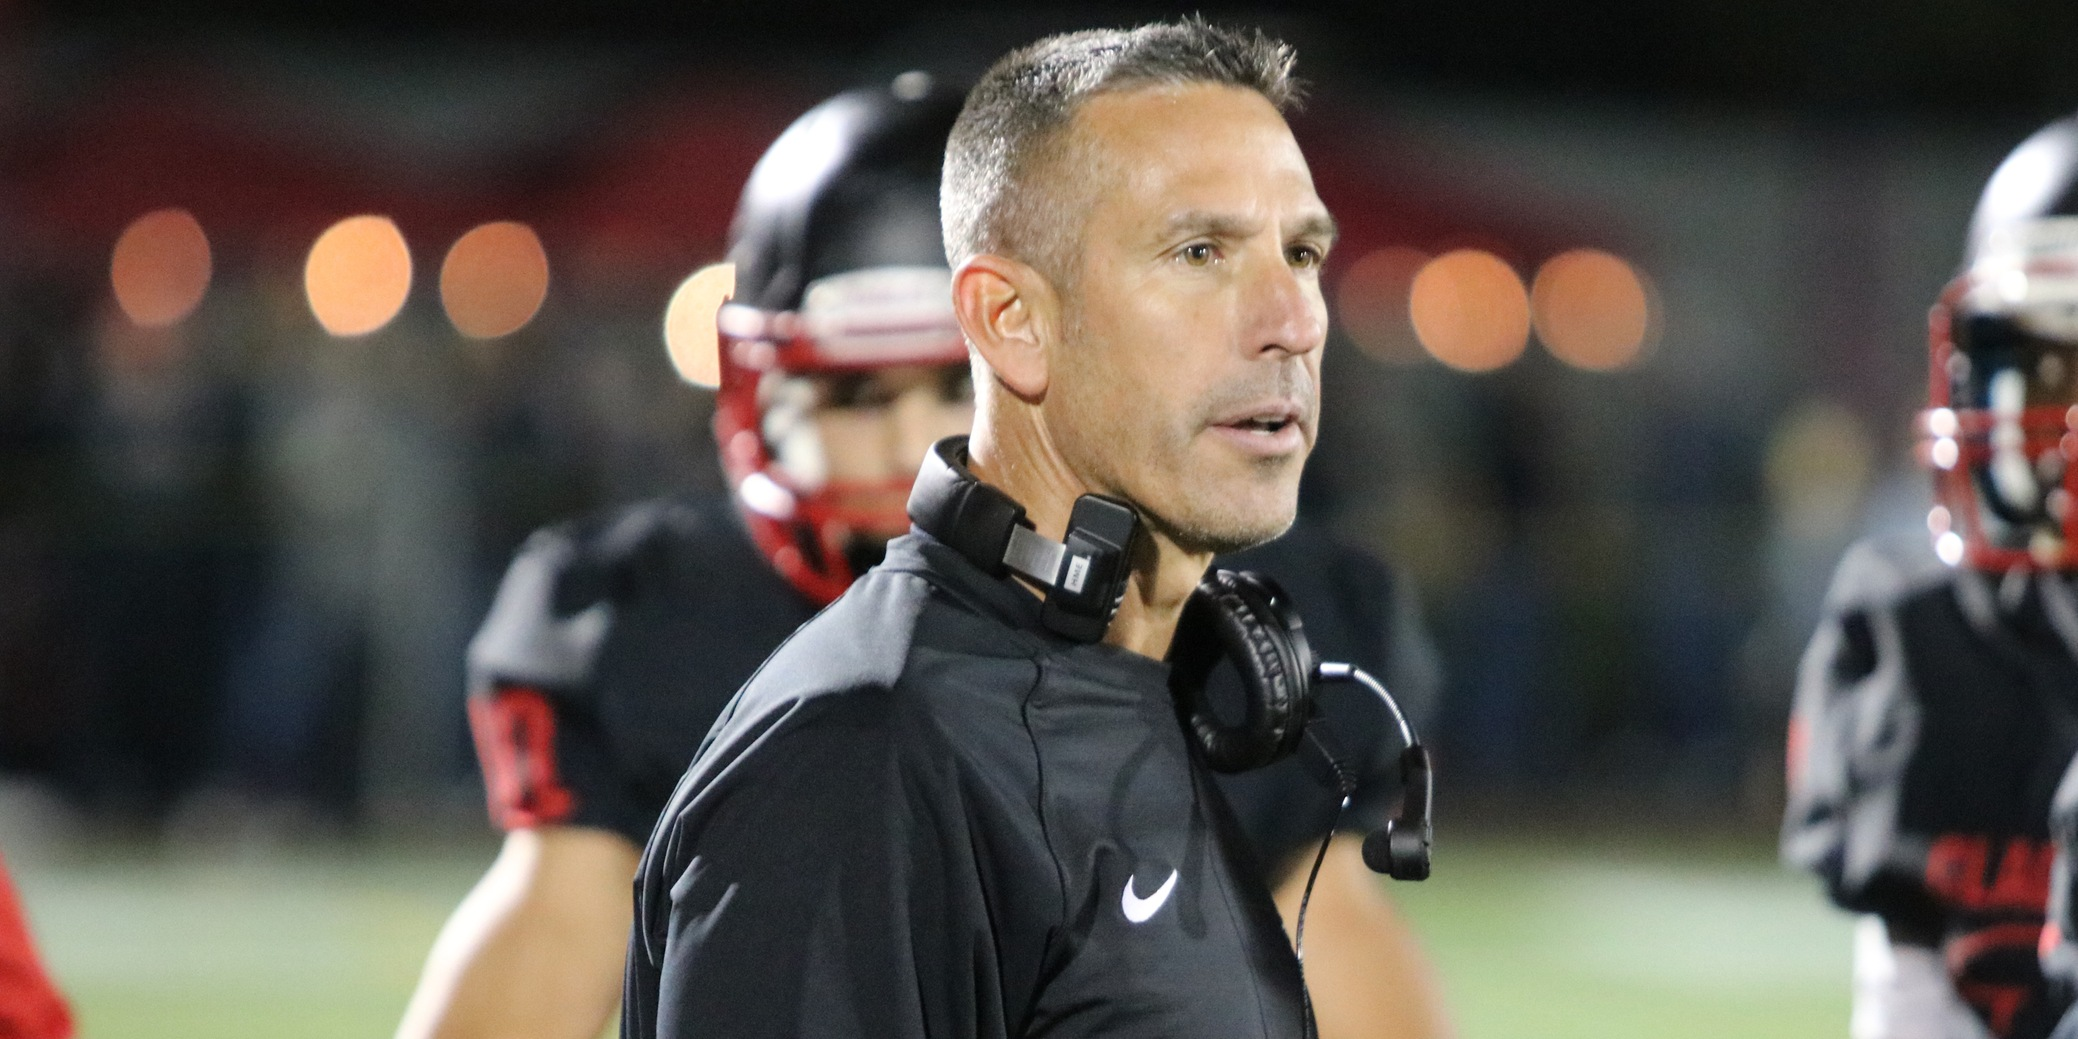 Championship-winning coach joins Pioneers as offensive coordinator